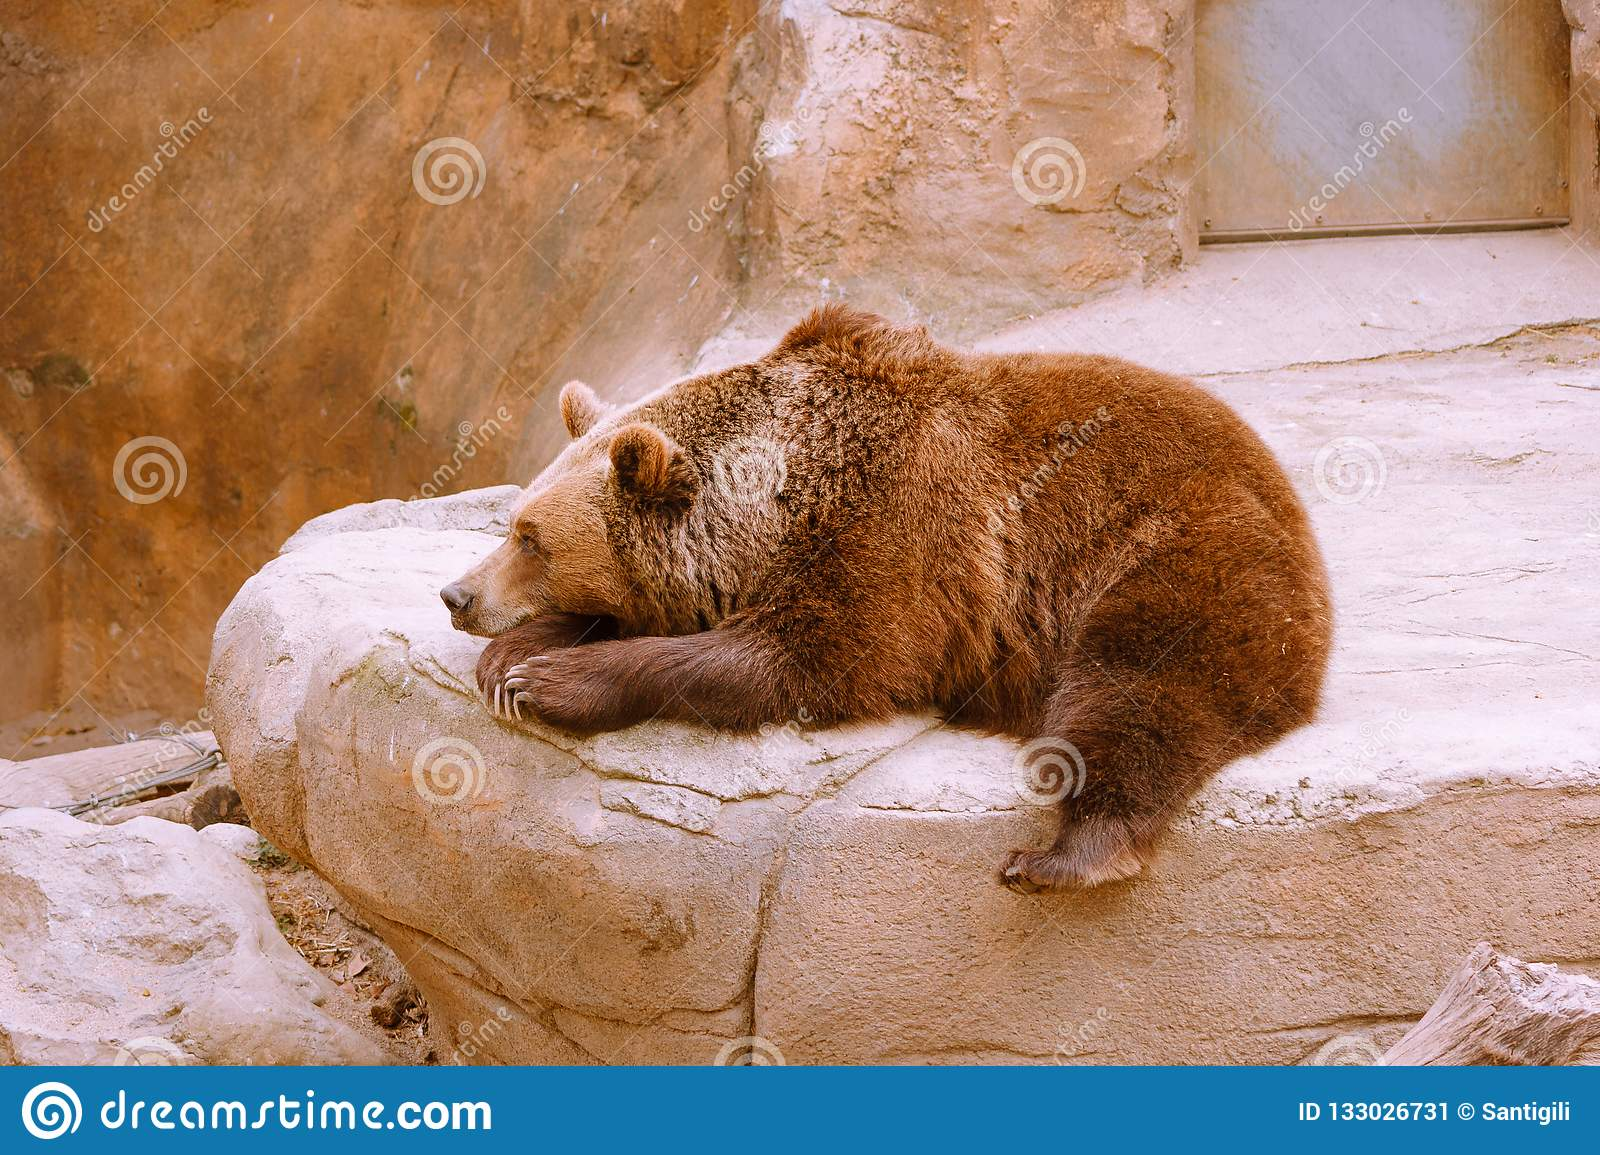 Bear resting on stone in zoo